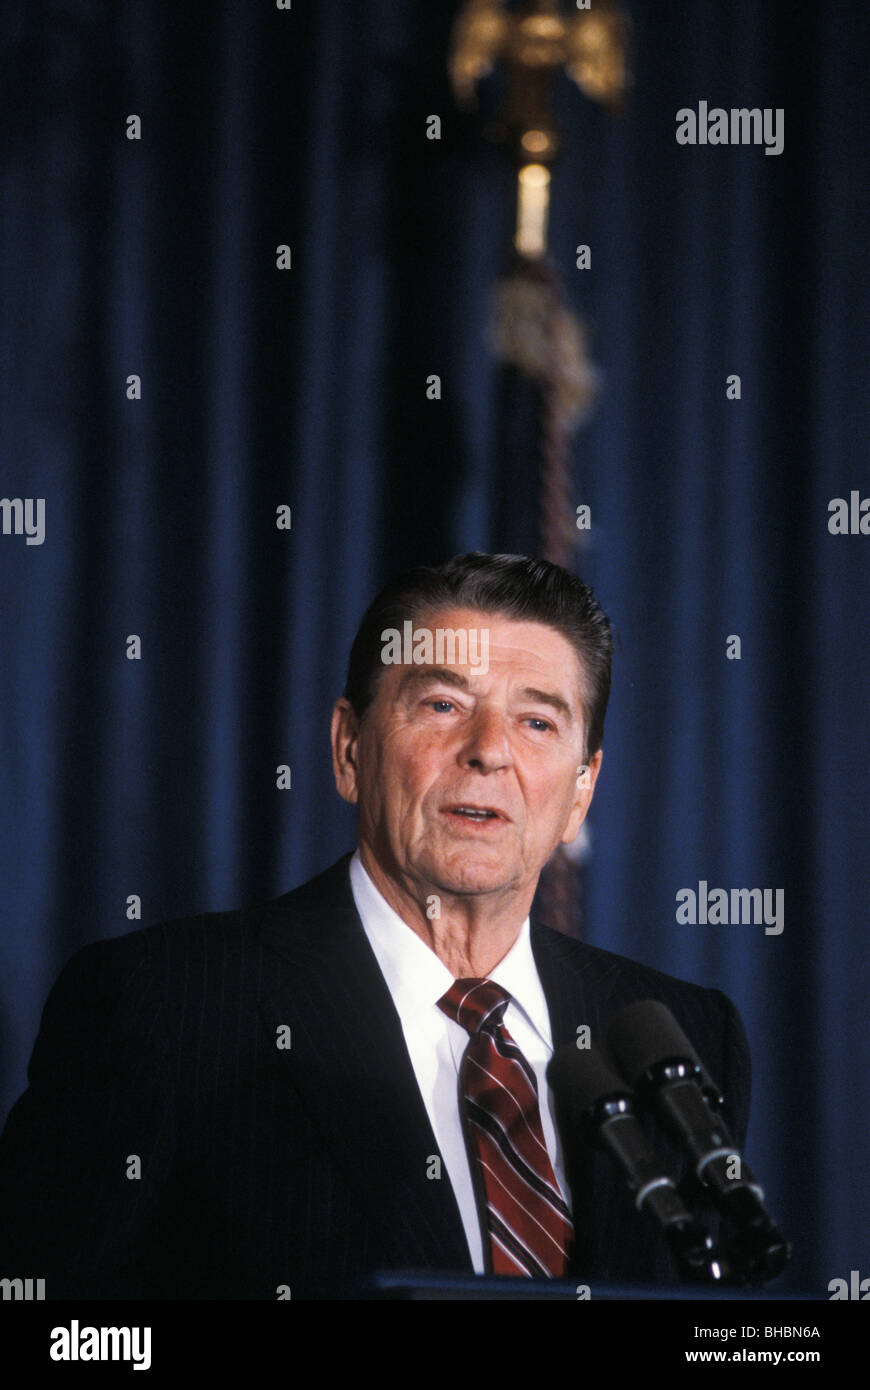 American President Ronald Reagan give election speech 1984 in Los Angeles - Stock Image